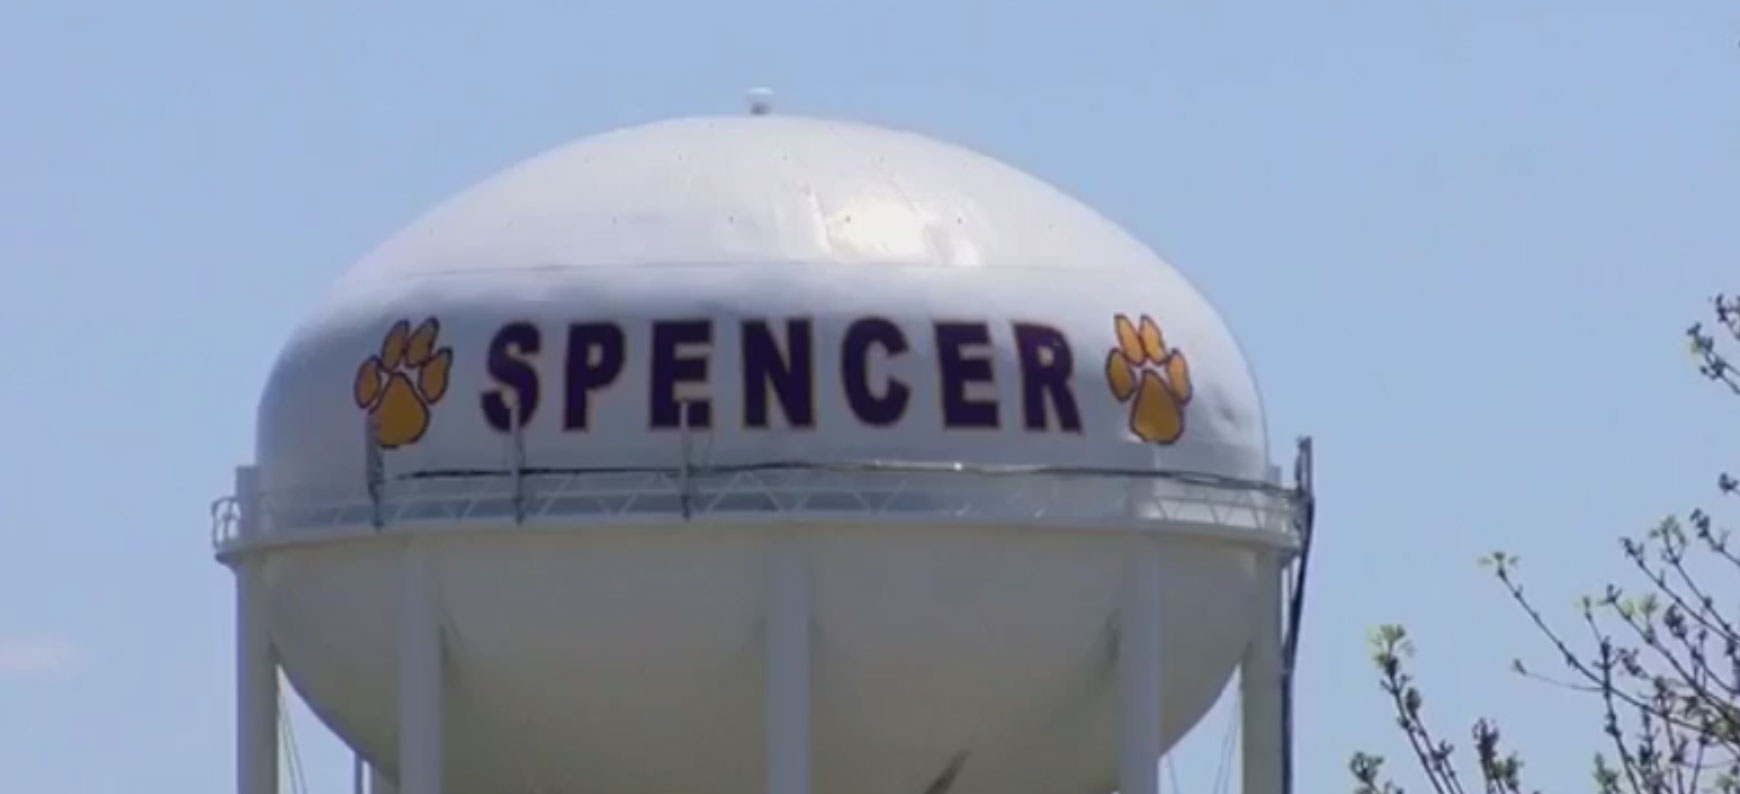 Spencer Ia Named By Smithsonian As One Of America 39 S Best Small Towns